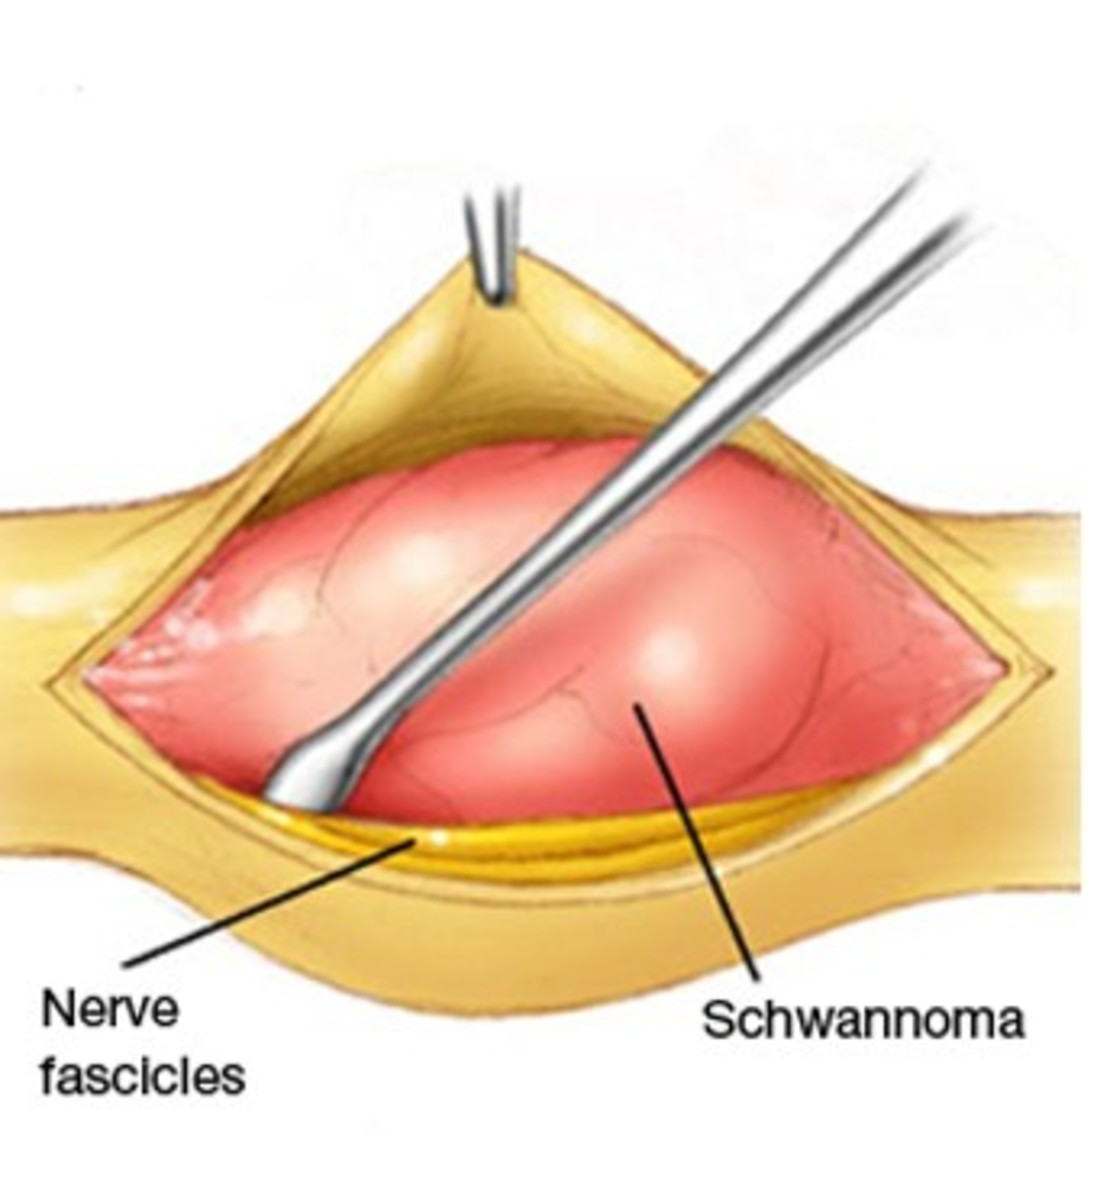 Schwannoma - Symptoms, Causes, Treatment, Pictures, Diagnosis